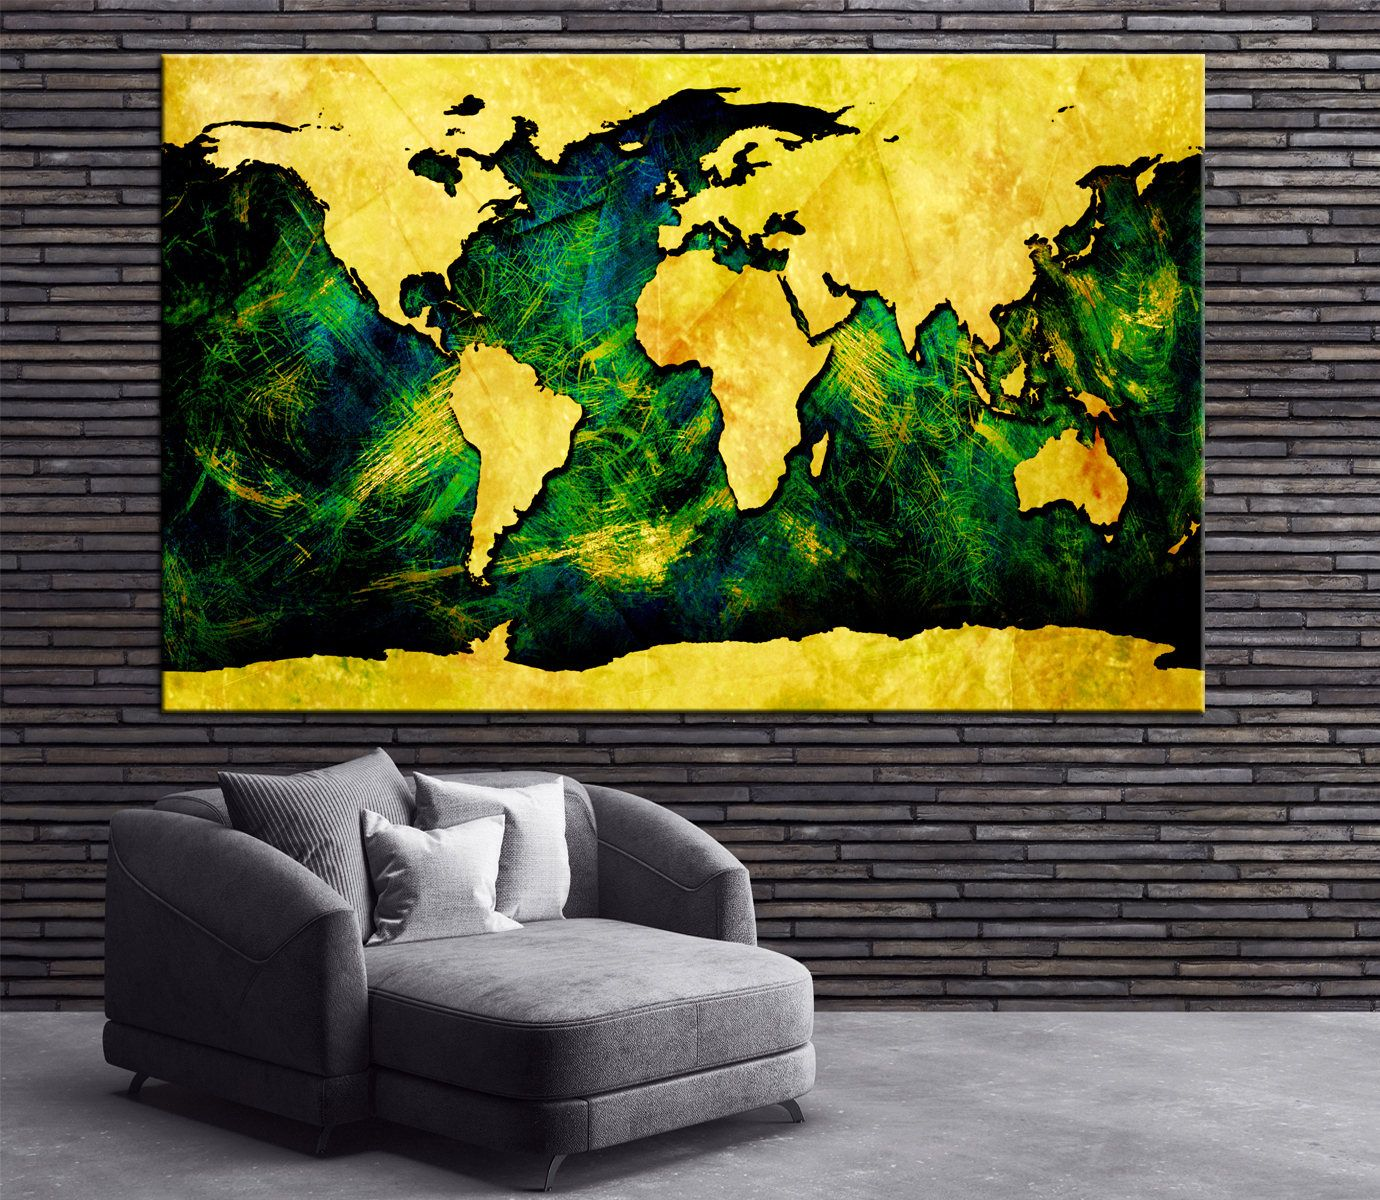 Large colorful abstract world map canvas panels set ready to hang large colorful abstract world map canvas panels set ready to hanggold and green world map print 1234 or 5 panels on canvas wall art by gumiabroncs Image collections